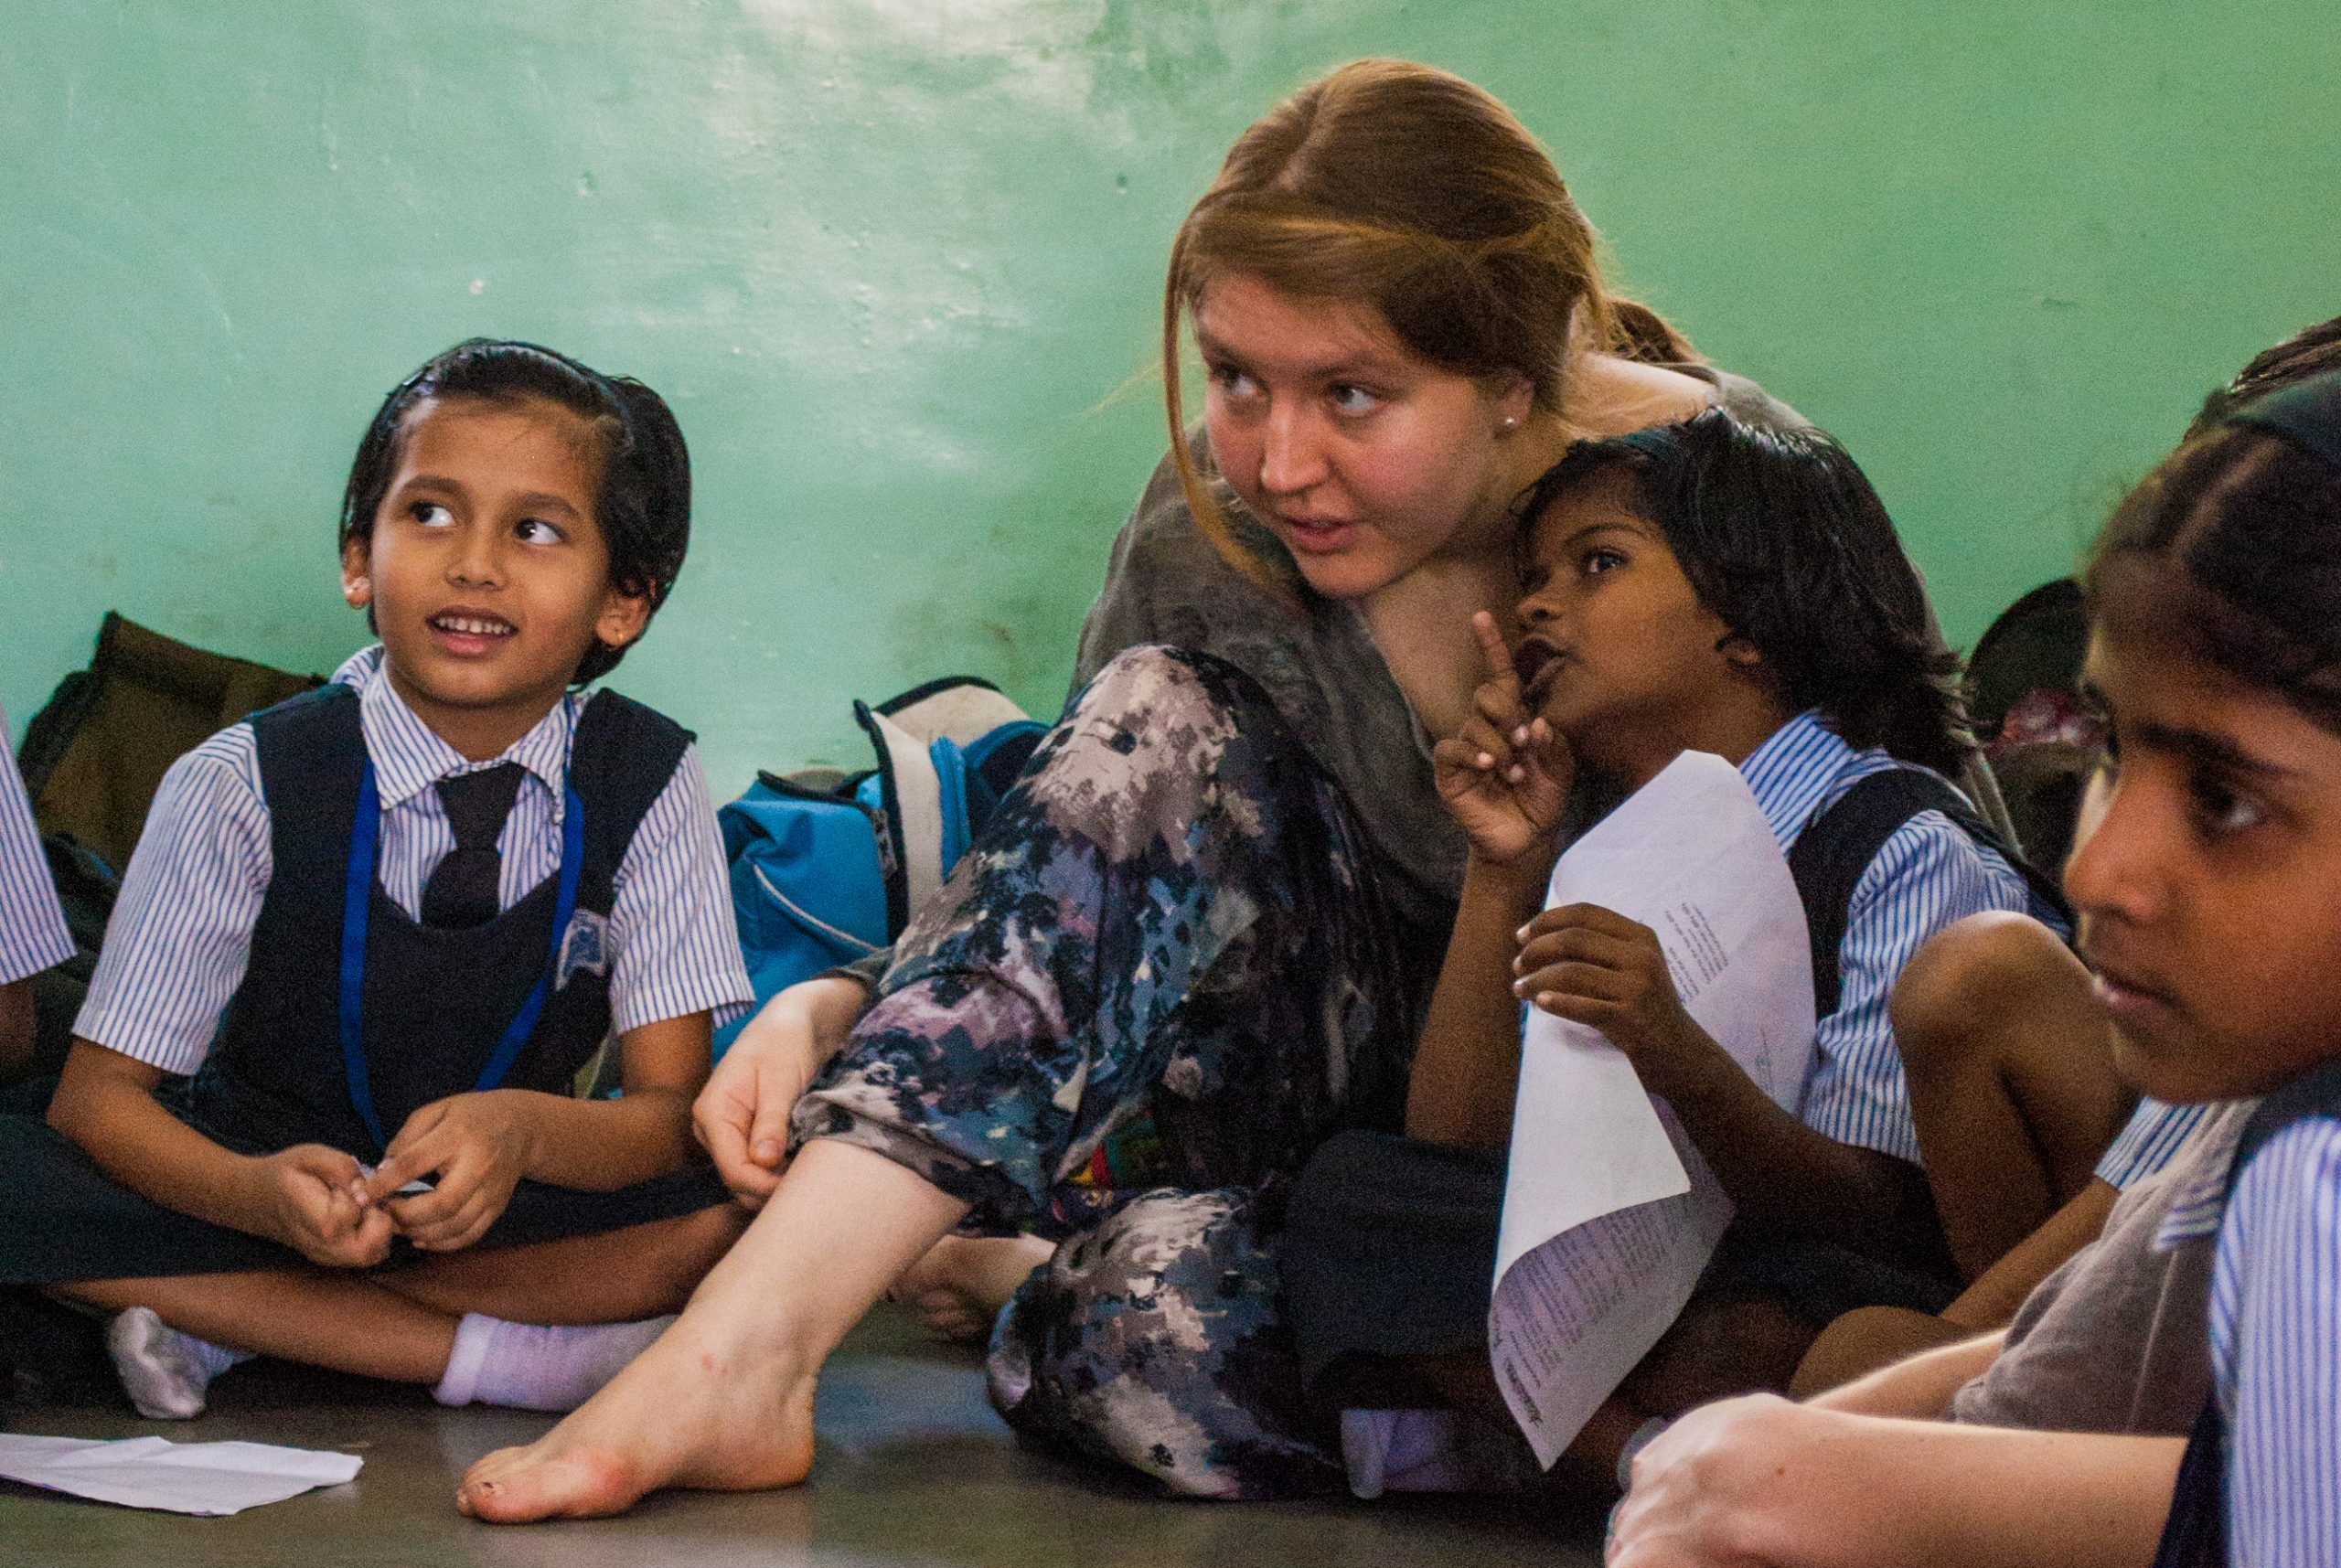 Tour member sitting and working with local students from India